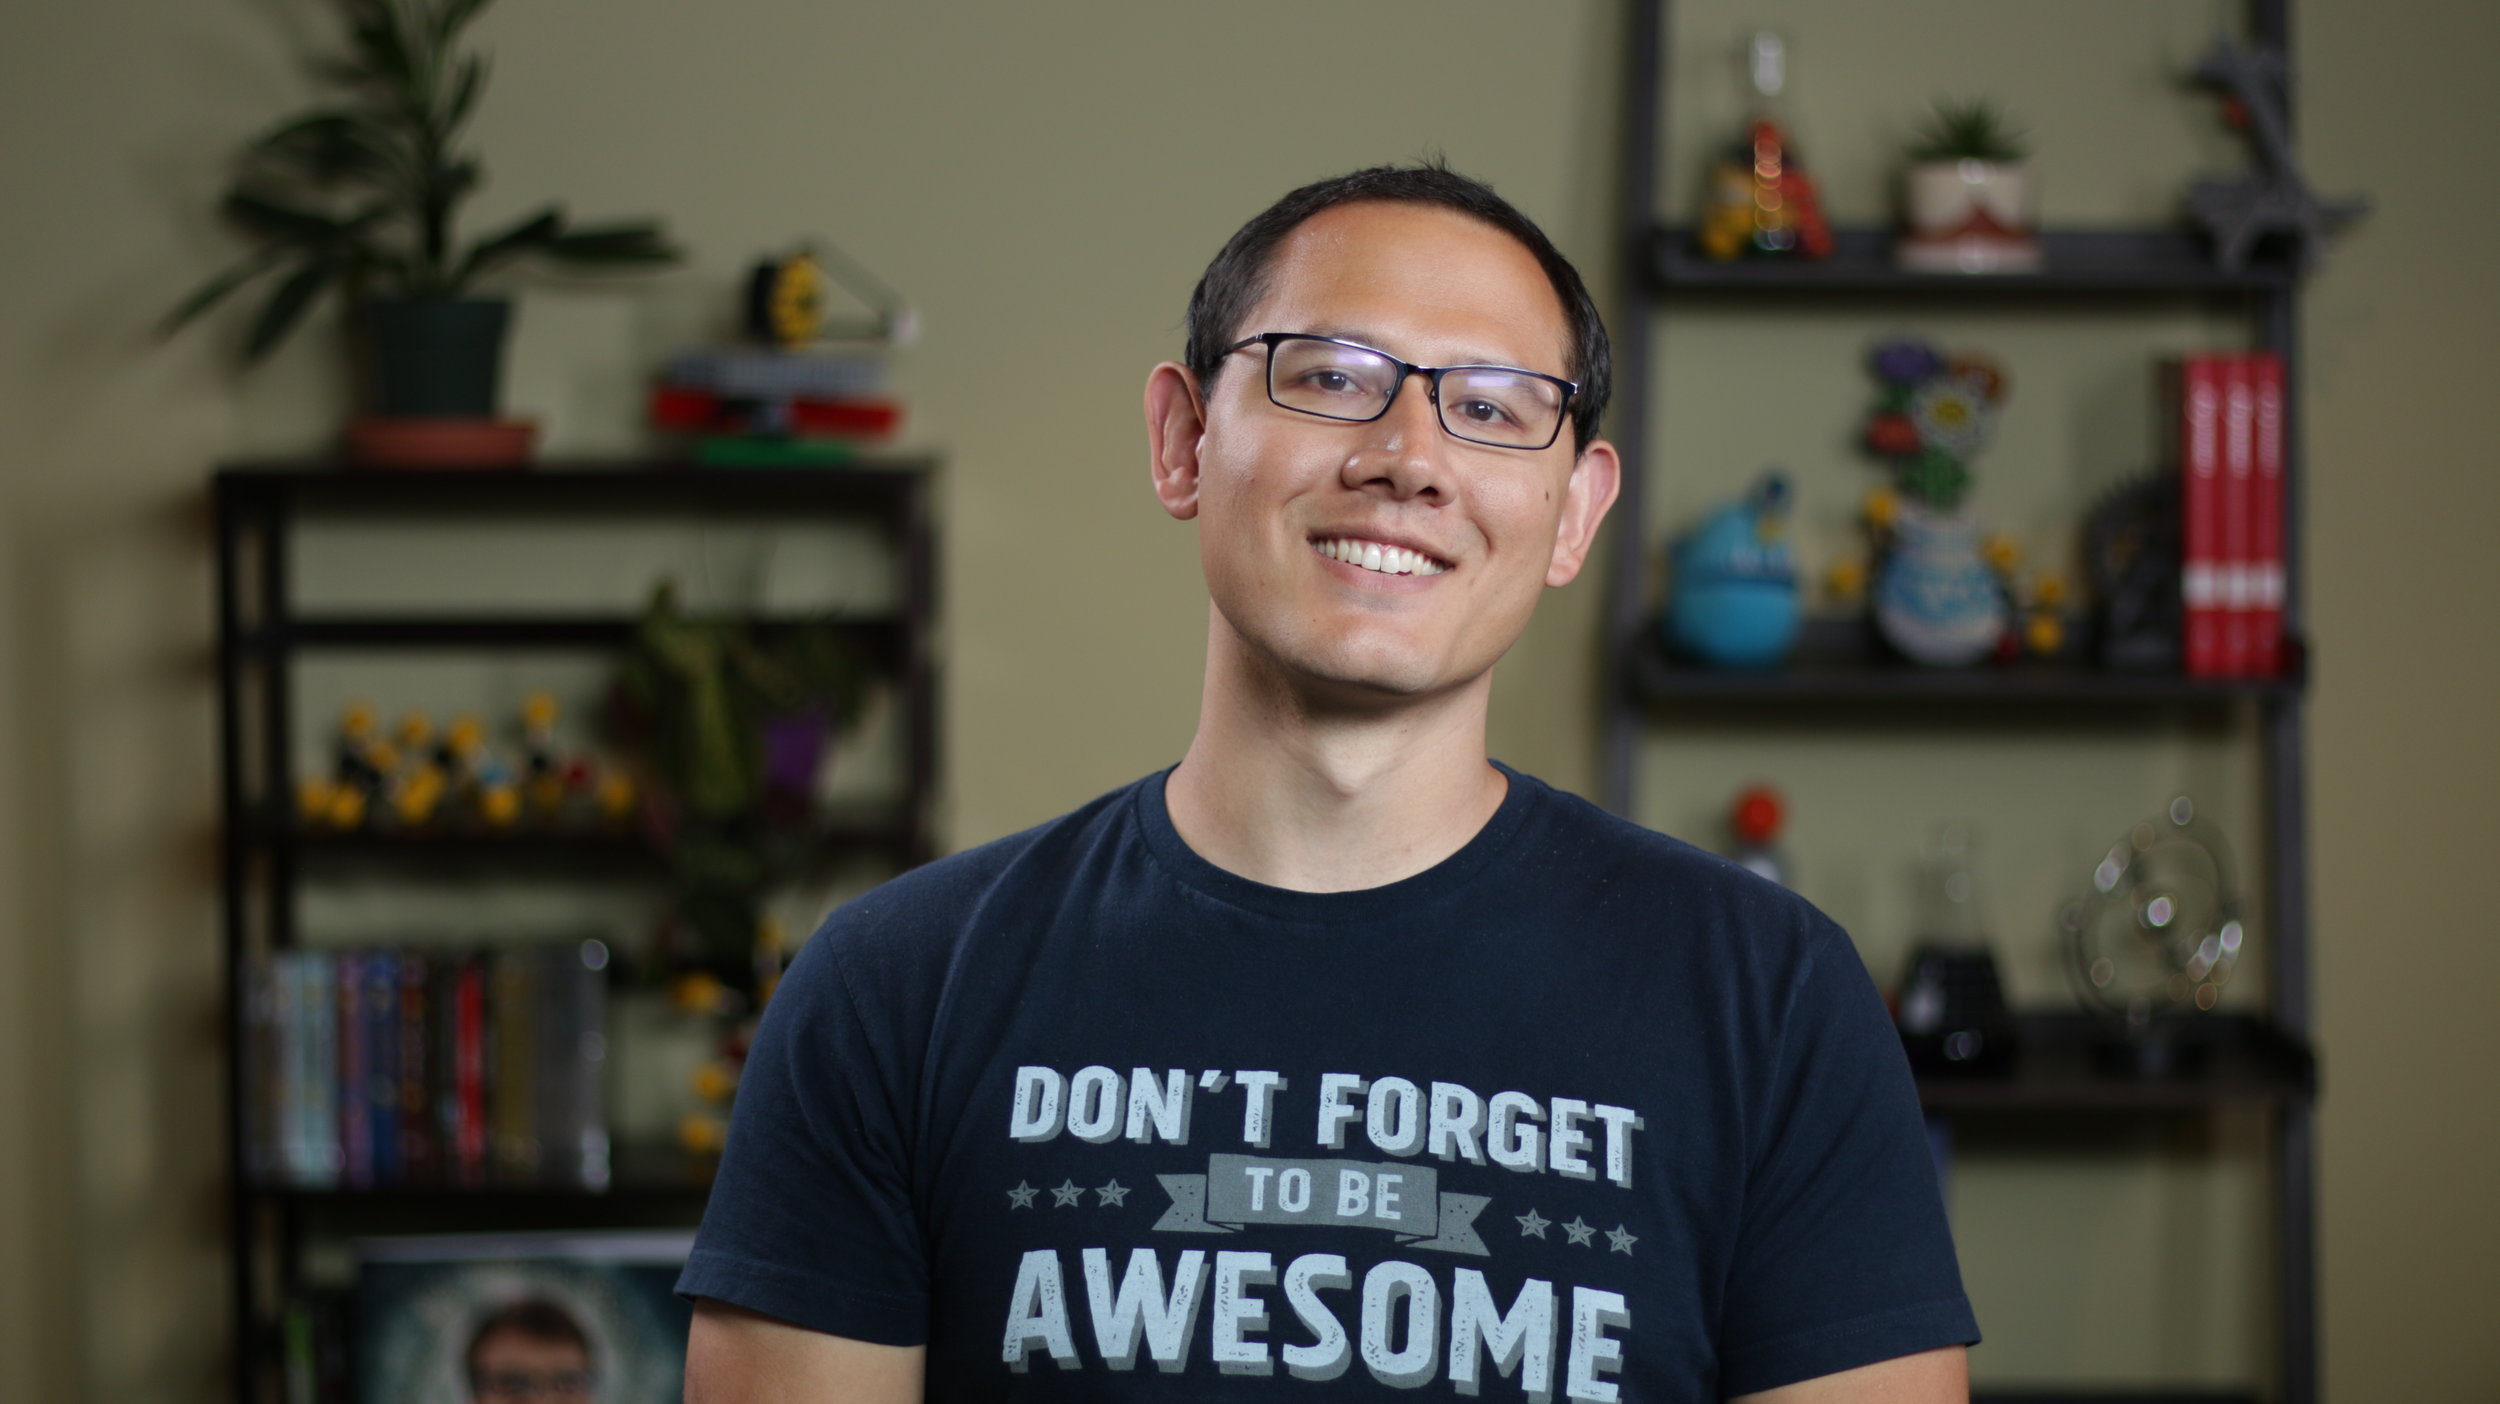 Stefan Chin Producer   Stefan Chin has been making videos with SciShow since 2013. He loves motion graphics, spreadsheets, and gaming. He's also on a quest to find the best pad thai on the West Coast.